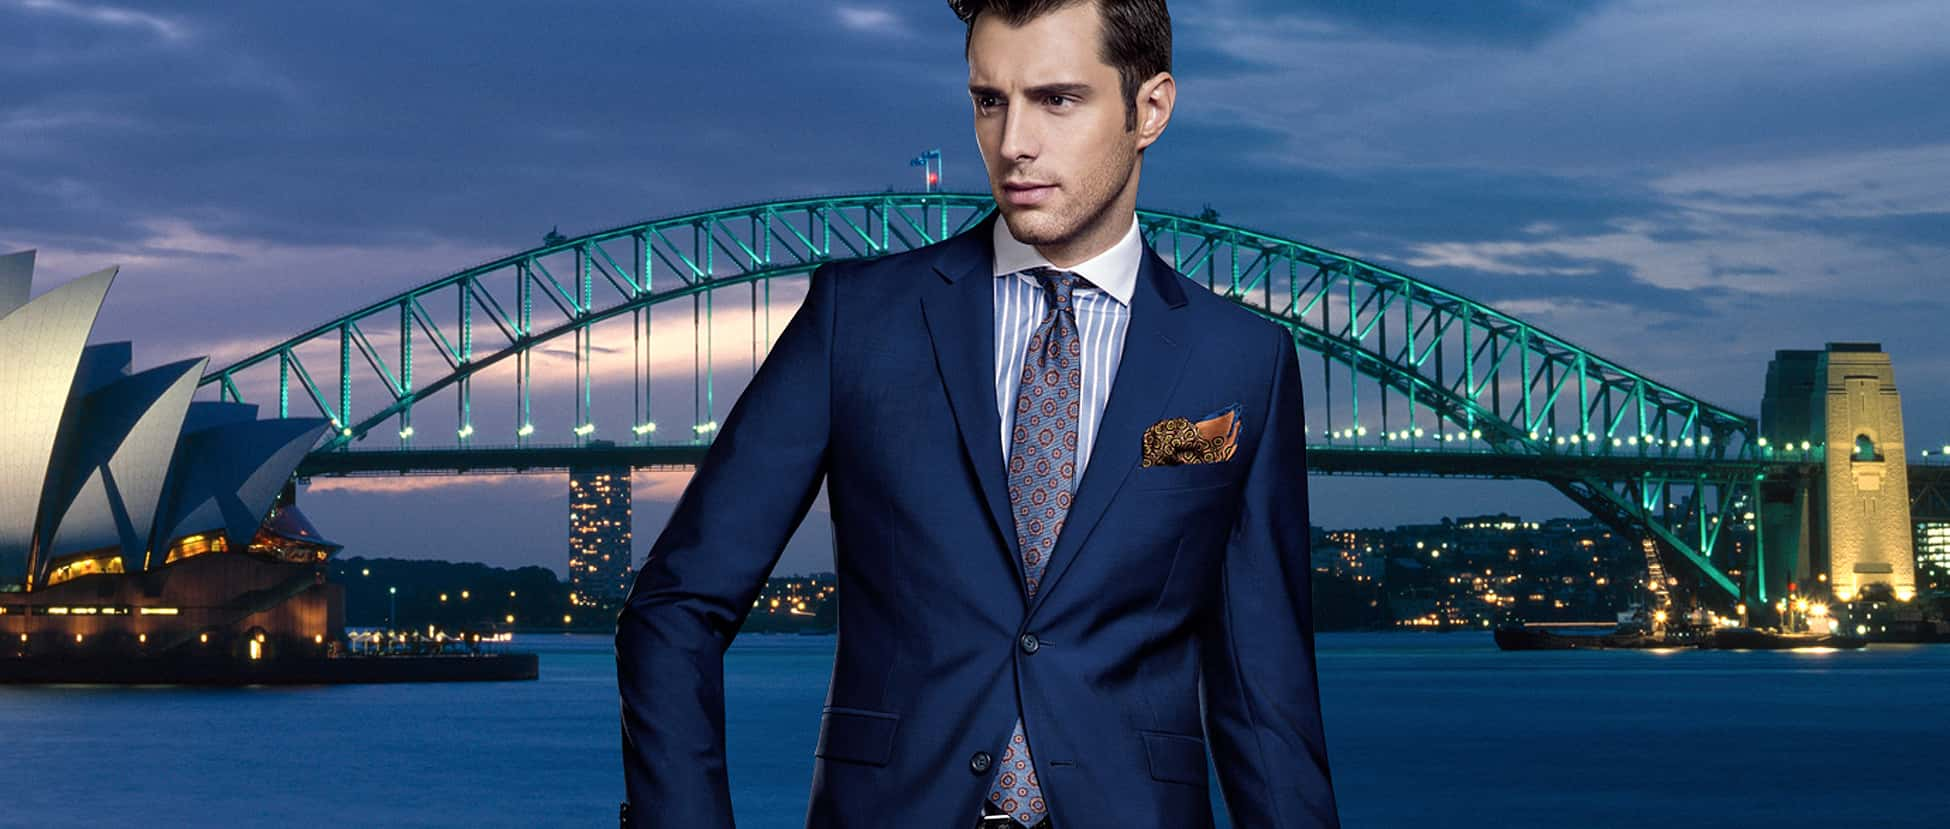 Germanicos bespoke tailor Sydney location office